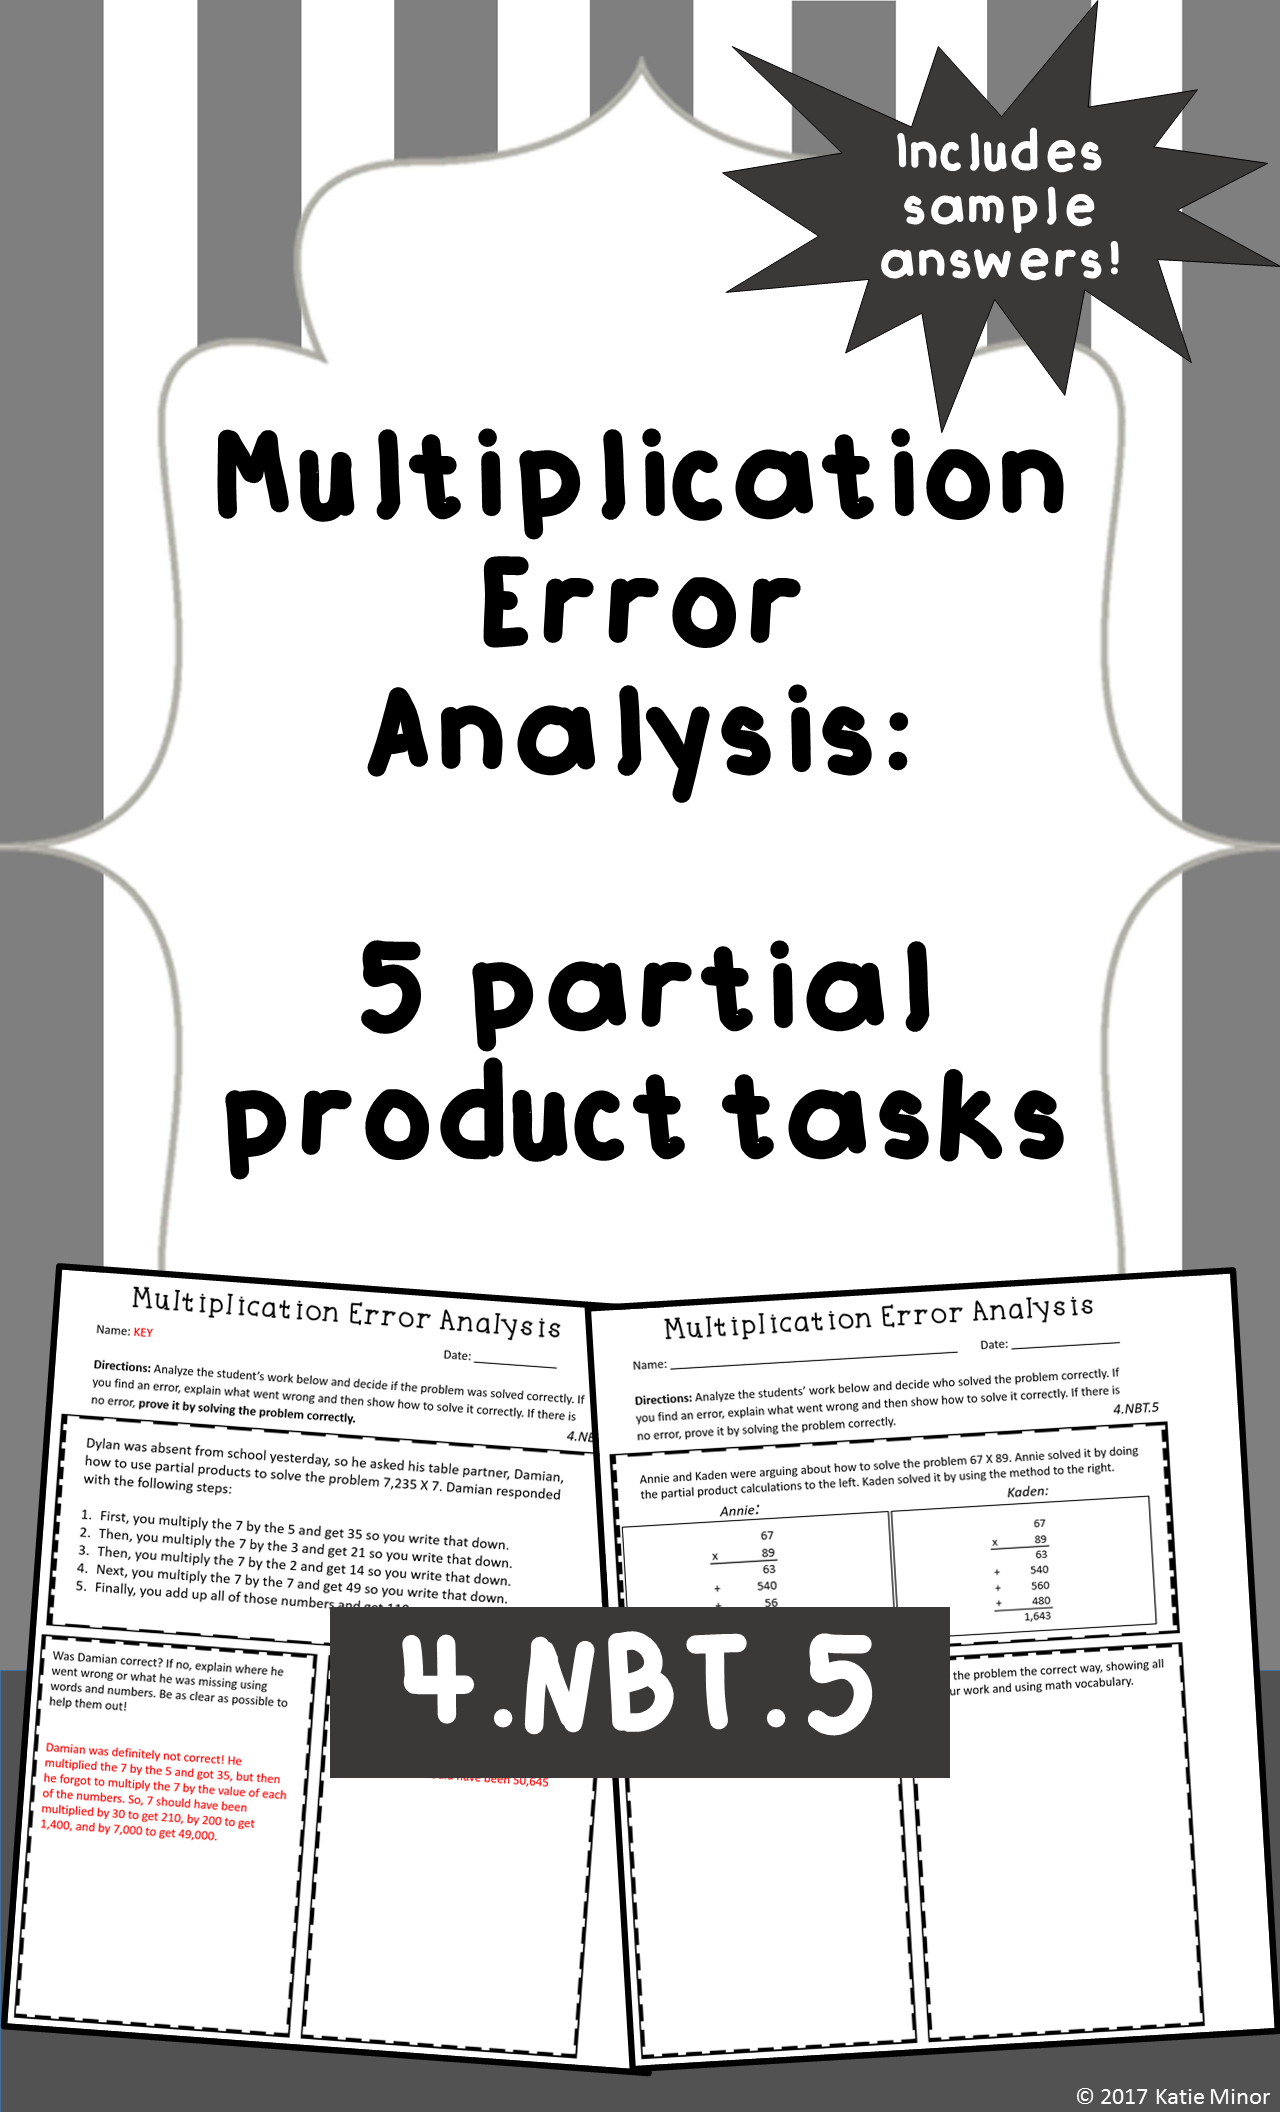 worksheet Partial Product Multiplication Worksheets multiplication error analysis partial products are you looking for a new way to check your students understanding of the method tired th